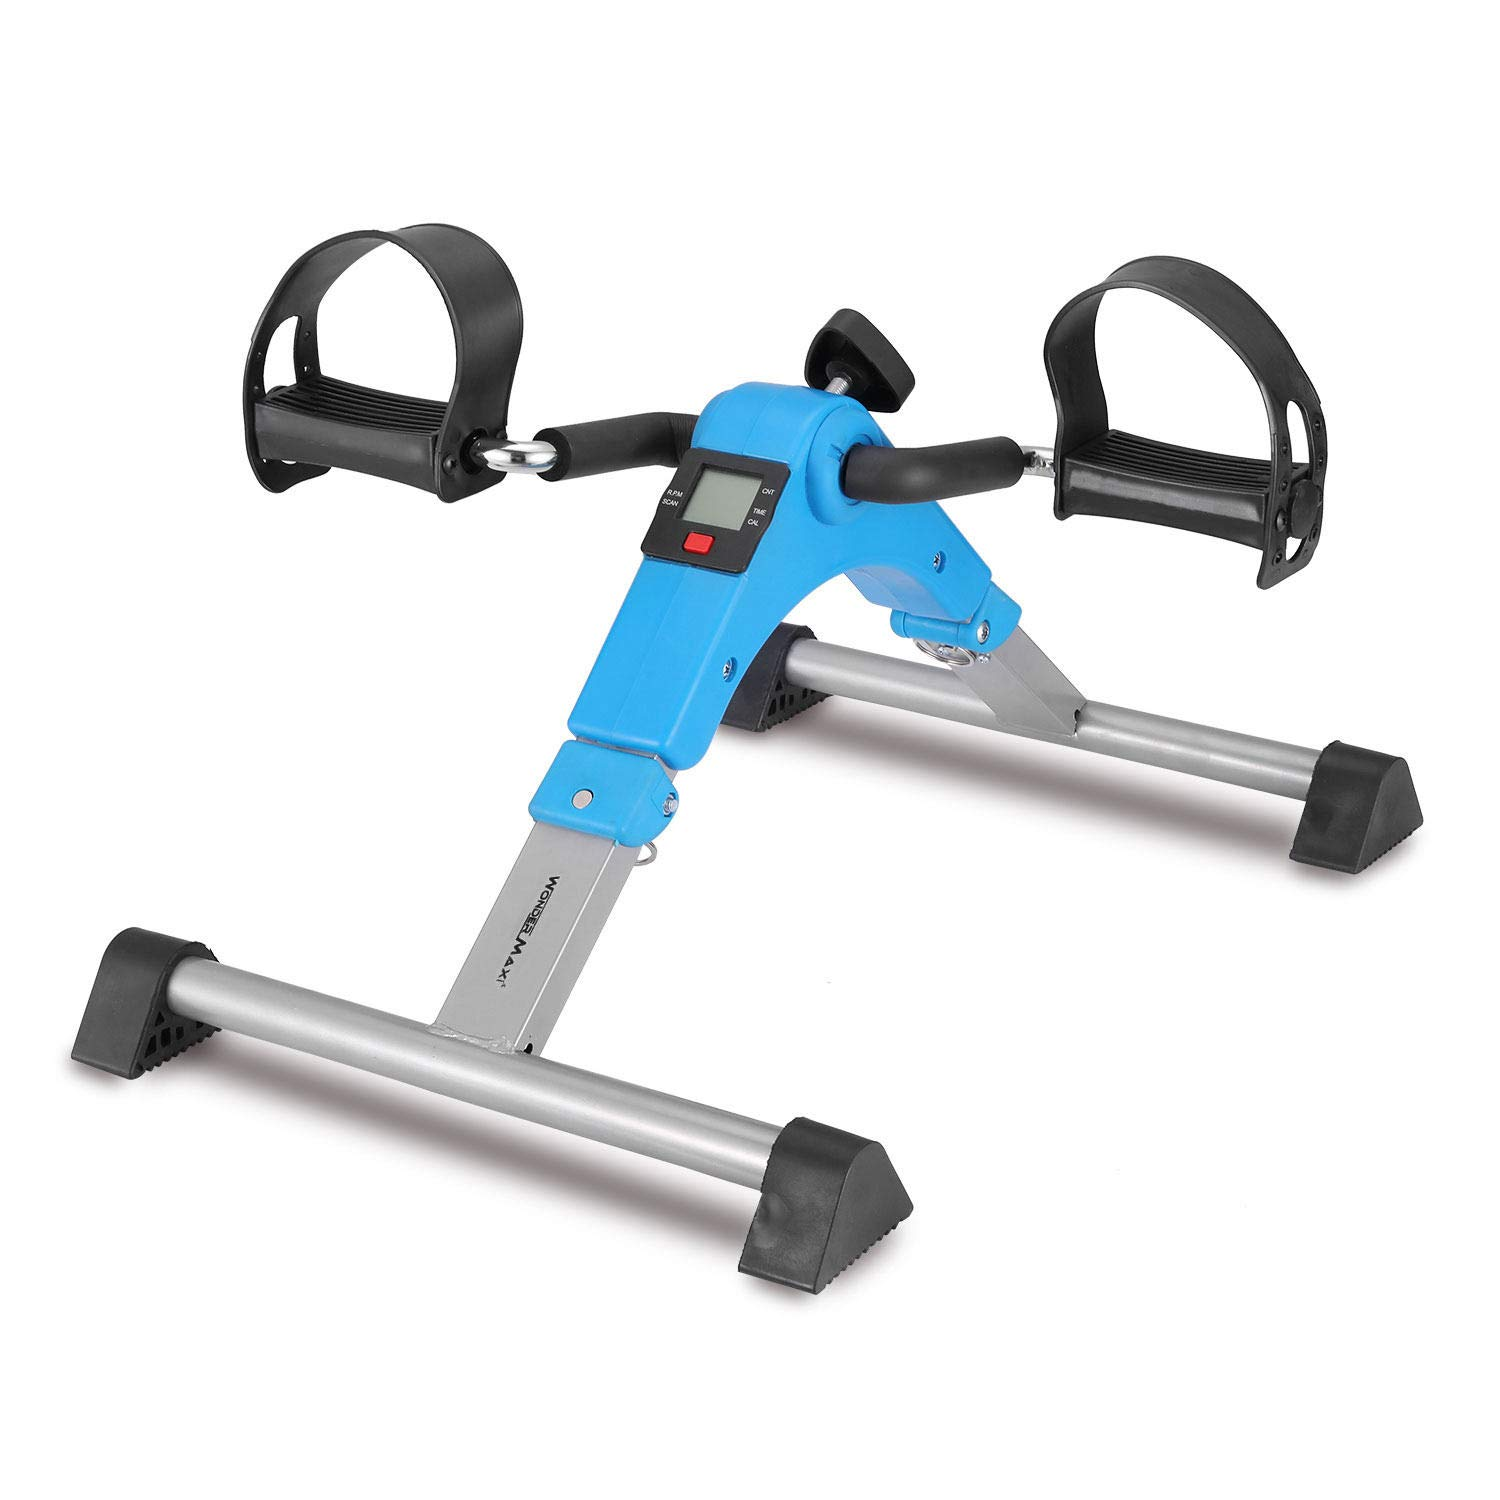 Under Desk Bike Pedal Exerciser, Foldable Mini Exercise Bike Equipment with Electronic Display for Legs and Arms Workout (Blue) by Wonder Maxi